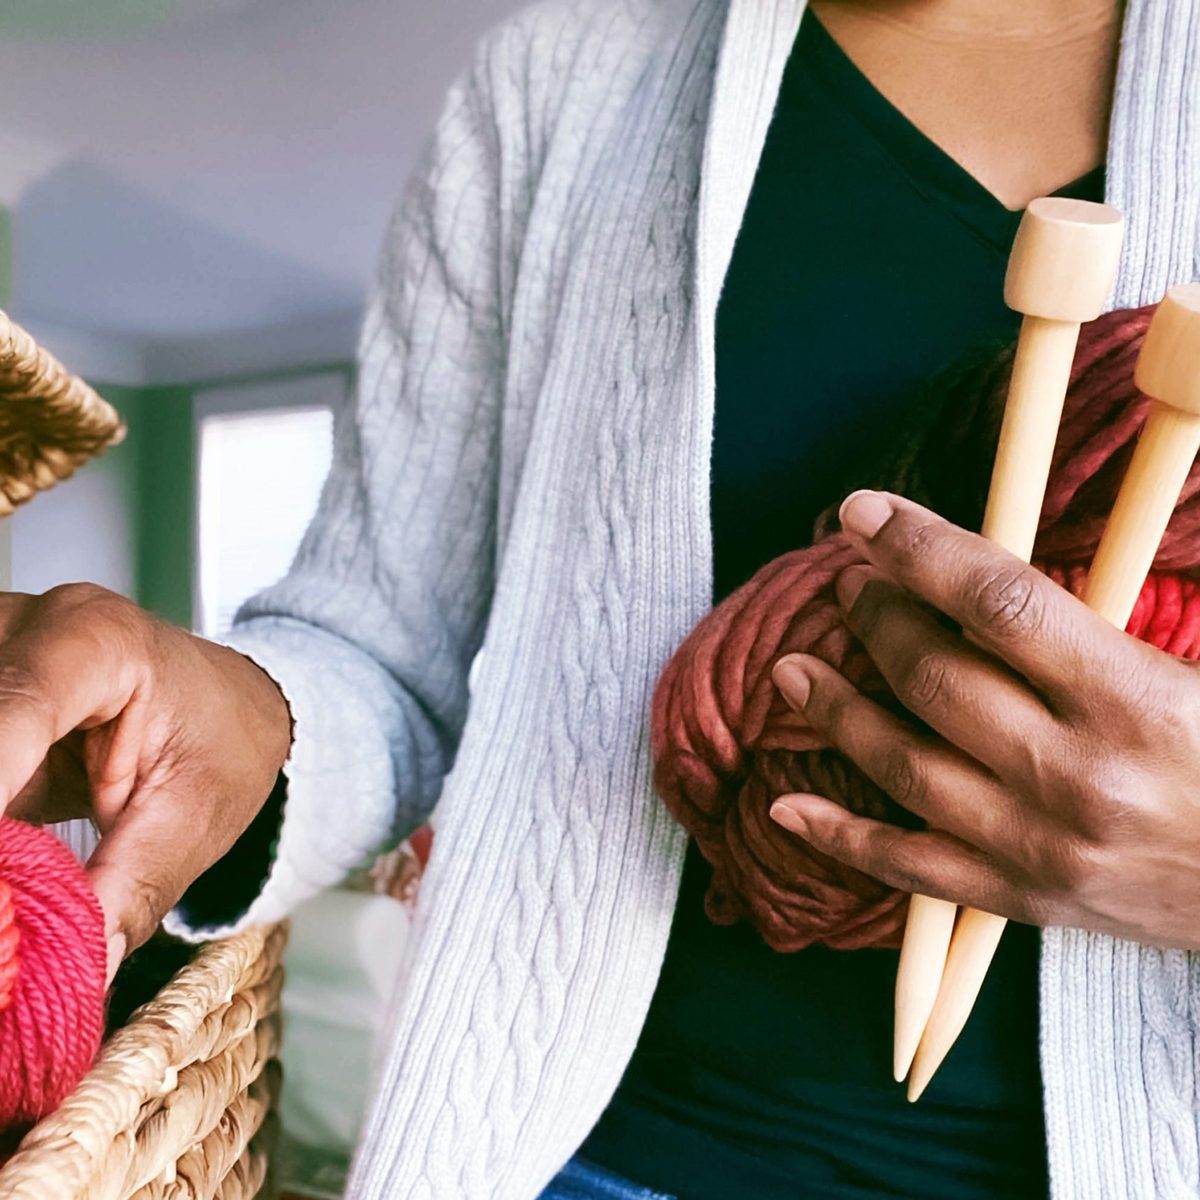 Close-up of unrecognizable woman holding a skein of super bulky hand dyed yarn and pair of giant knitting needles while searching her stash